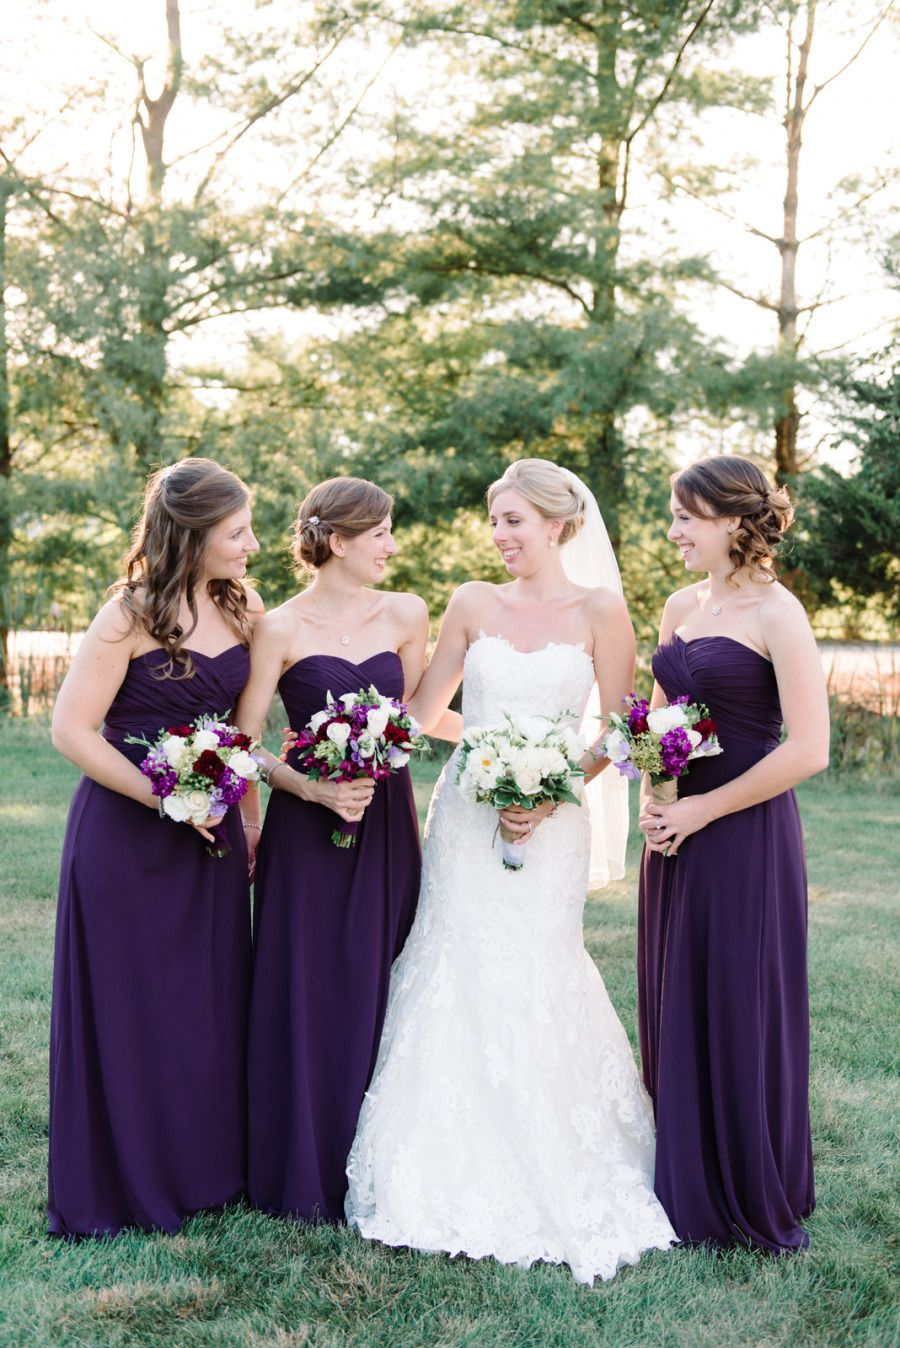 18 beautiful bridesmaids dresses for autumn that wow autumn 18 beautiful bridesmaids dresses for autumn that wow ombrellifo Images